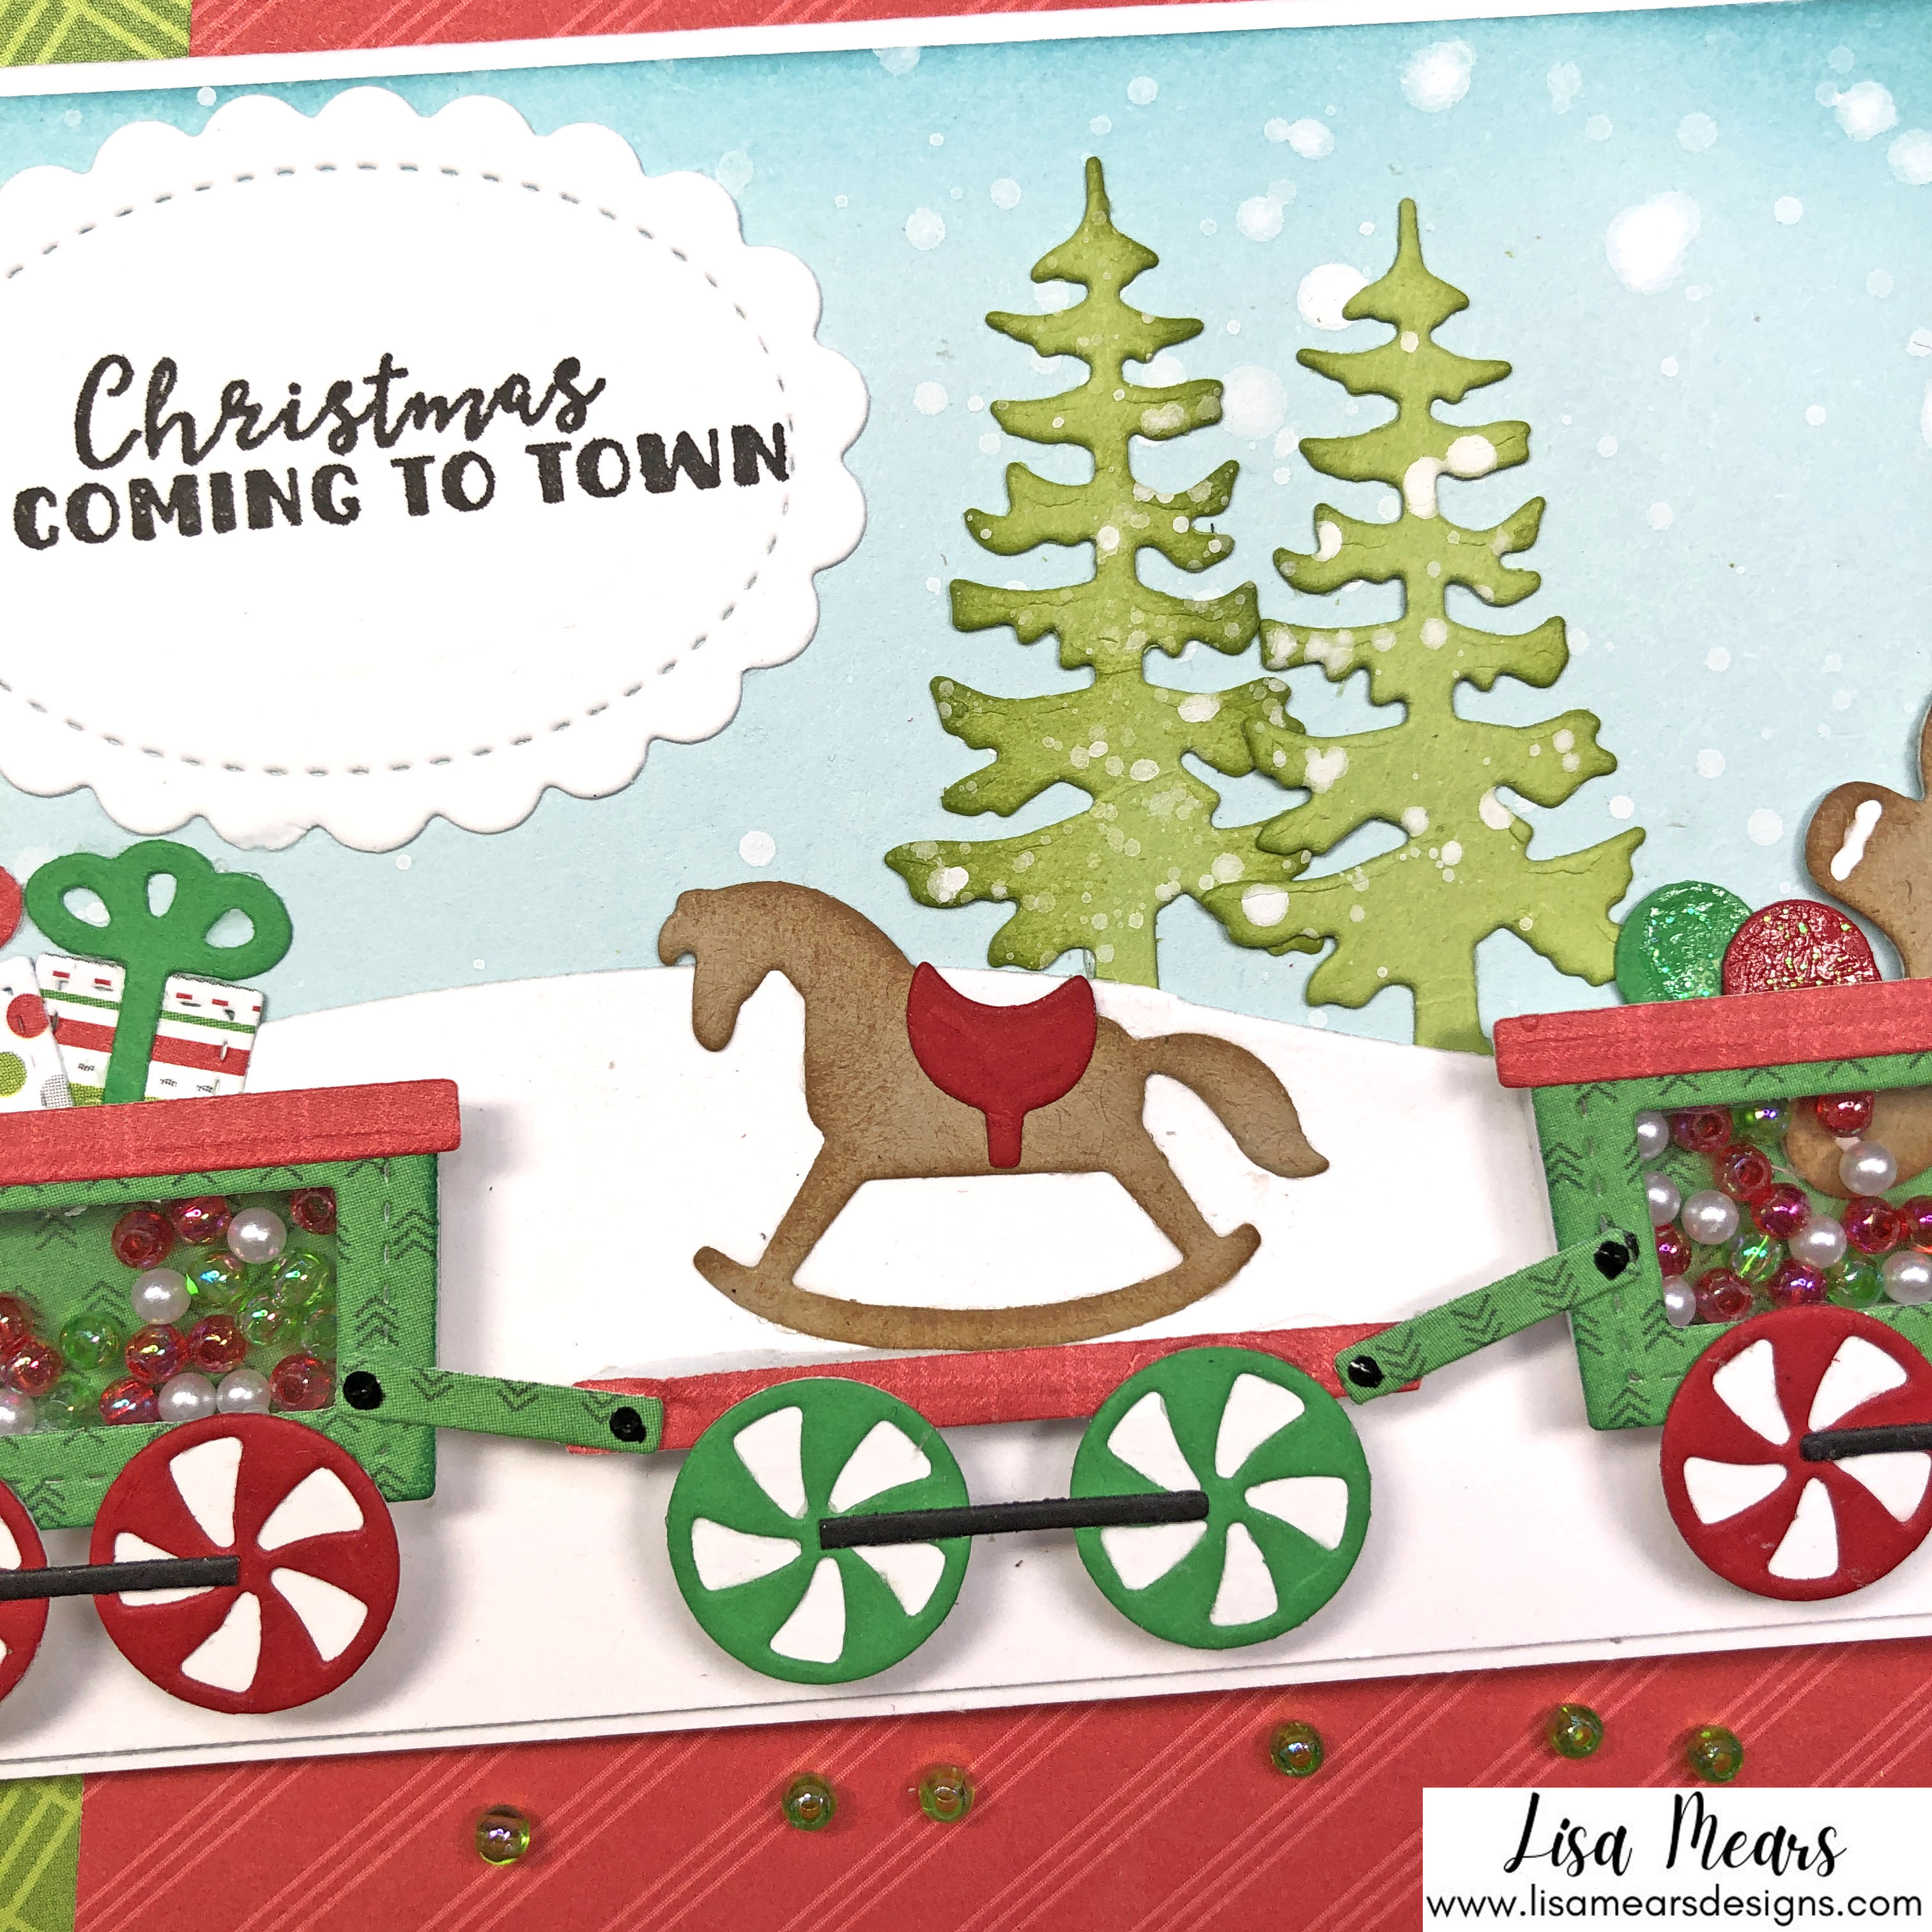 Queen and Company Jolly Jingles Shaker Kit - 10 Cards 1 Kit - Shaker Cards - Slimline Card with Christmas Train